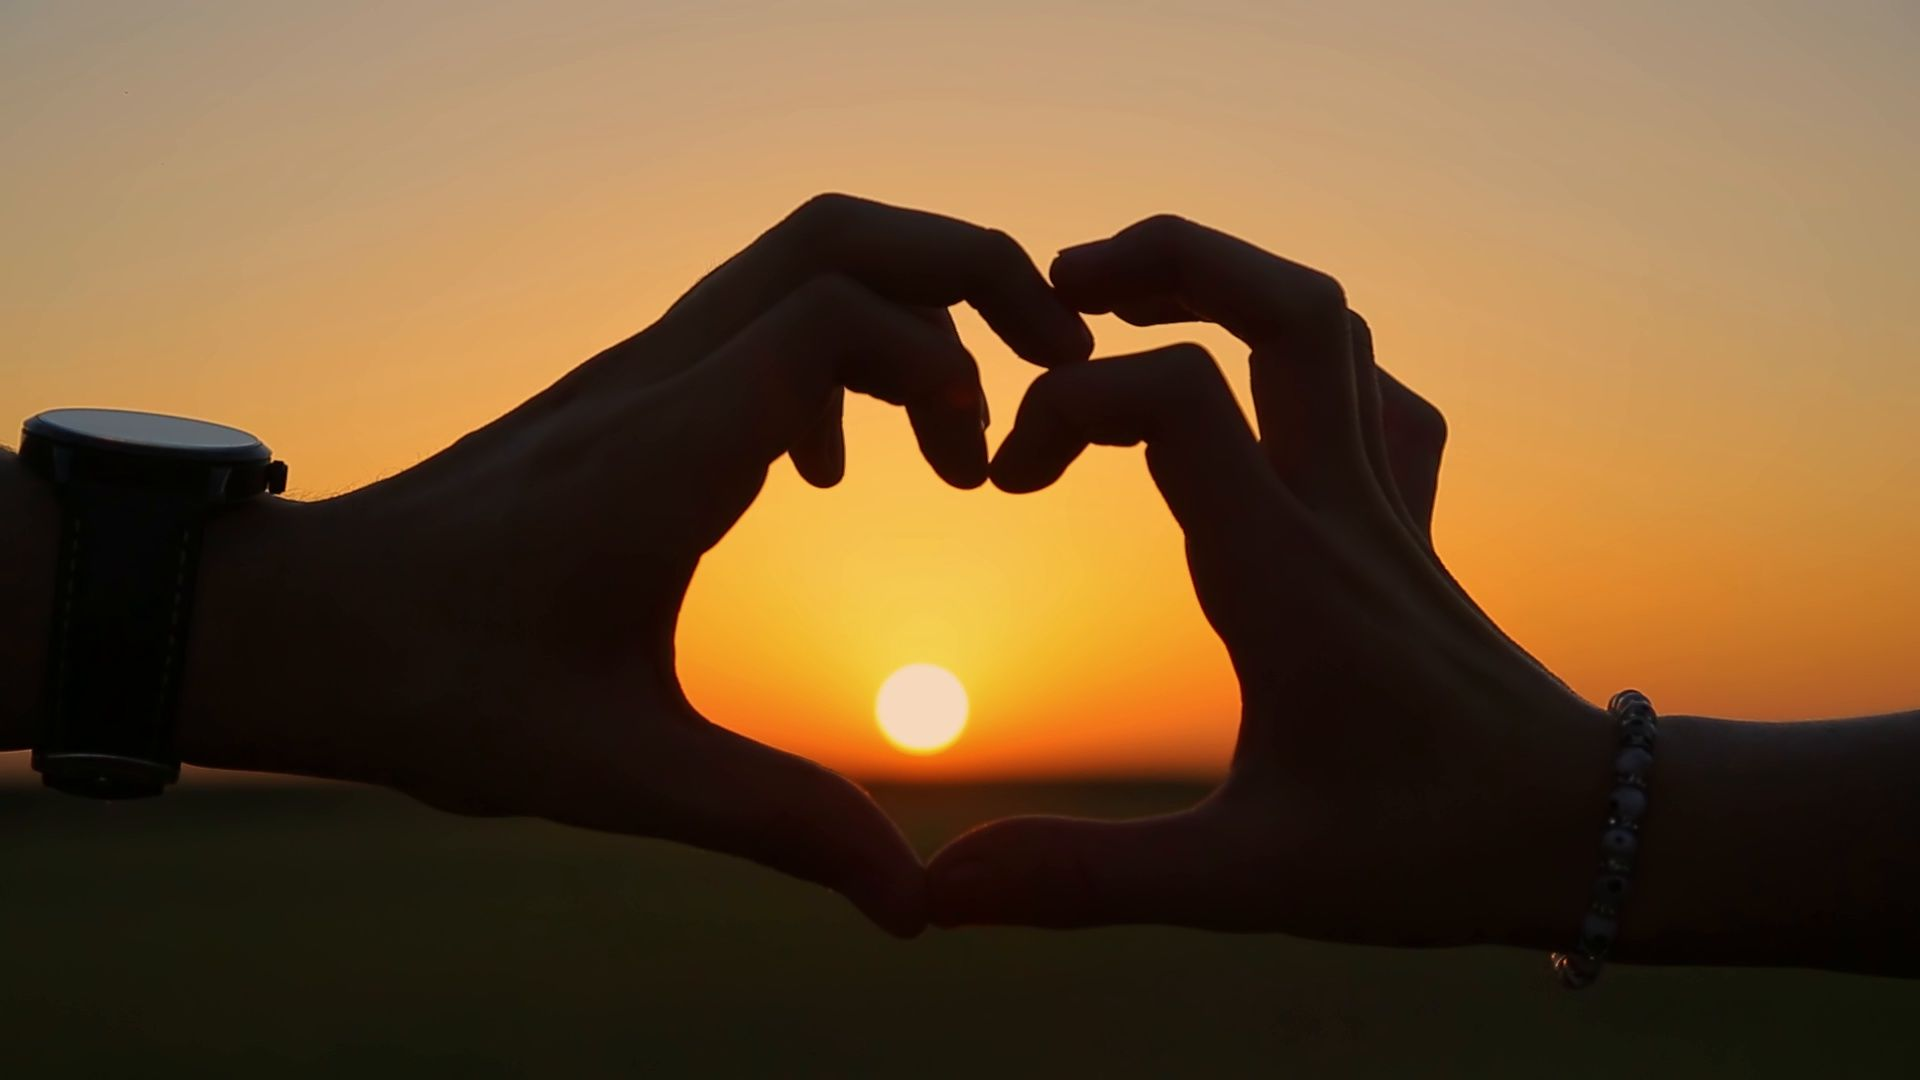 Person Making Heart With Hands Over Nature Sunset Background Happy People Stock Footage Hands Nature Sunset Sunset Background Graphic Design Art Illustration Hand shaped love wallpaper in sunset